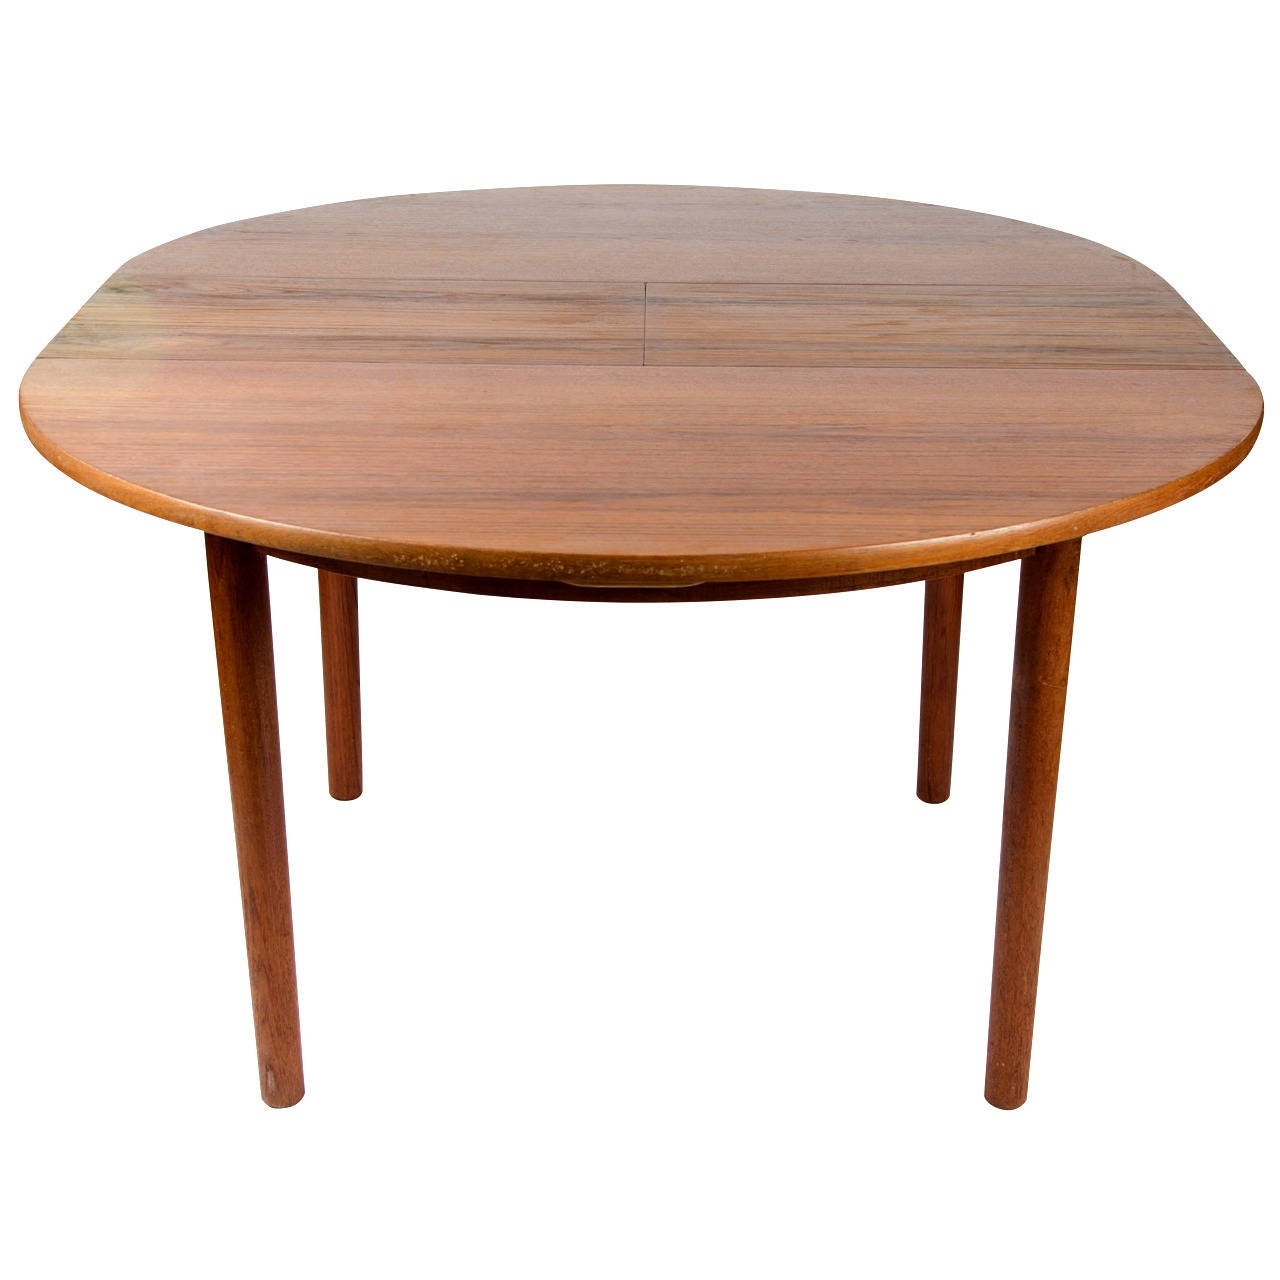 Mid Century Teak Extending Dining Table by Malcolm Walker  : 1mainorgl from www.1stdibs.com size 1280 x 1280 jpeg 83kB